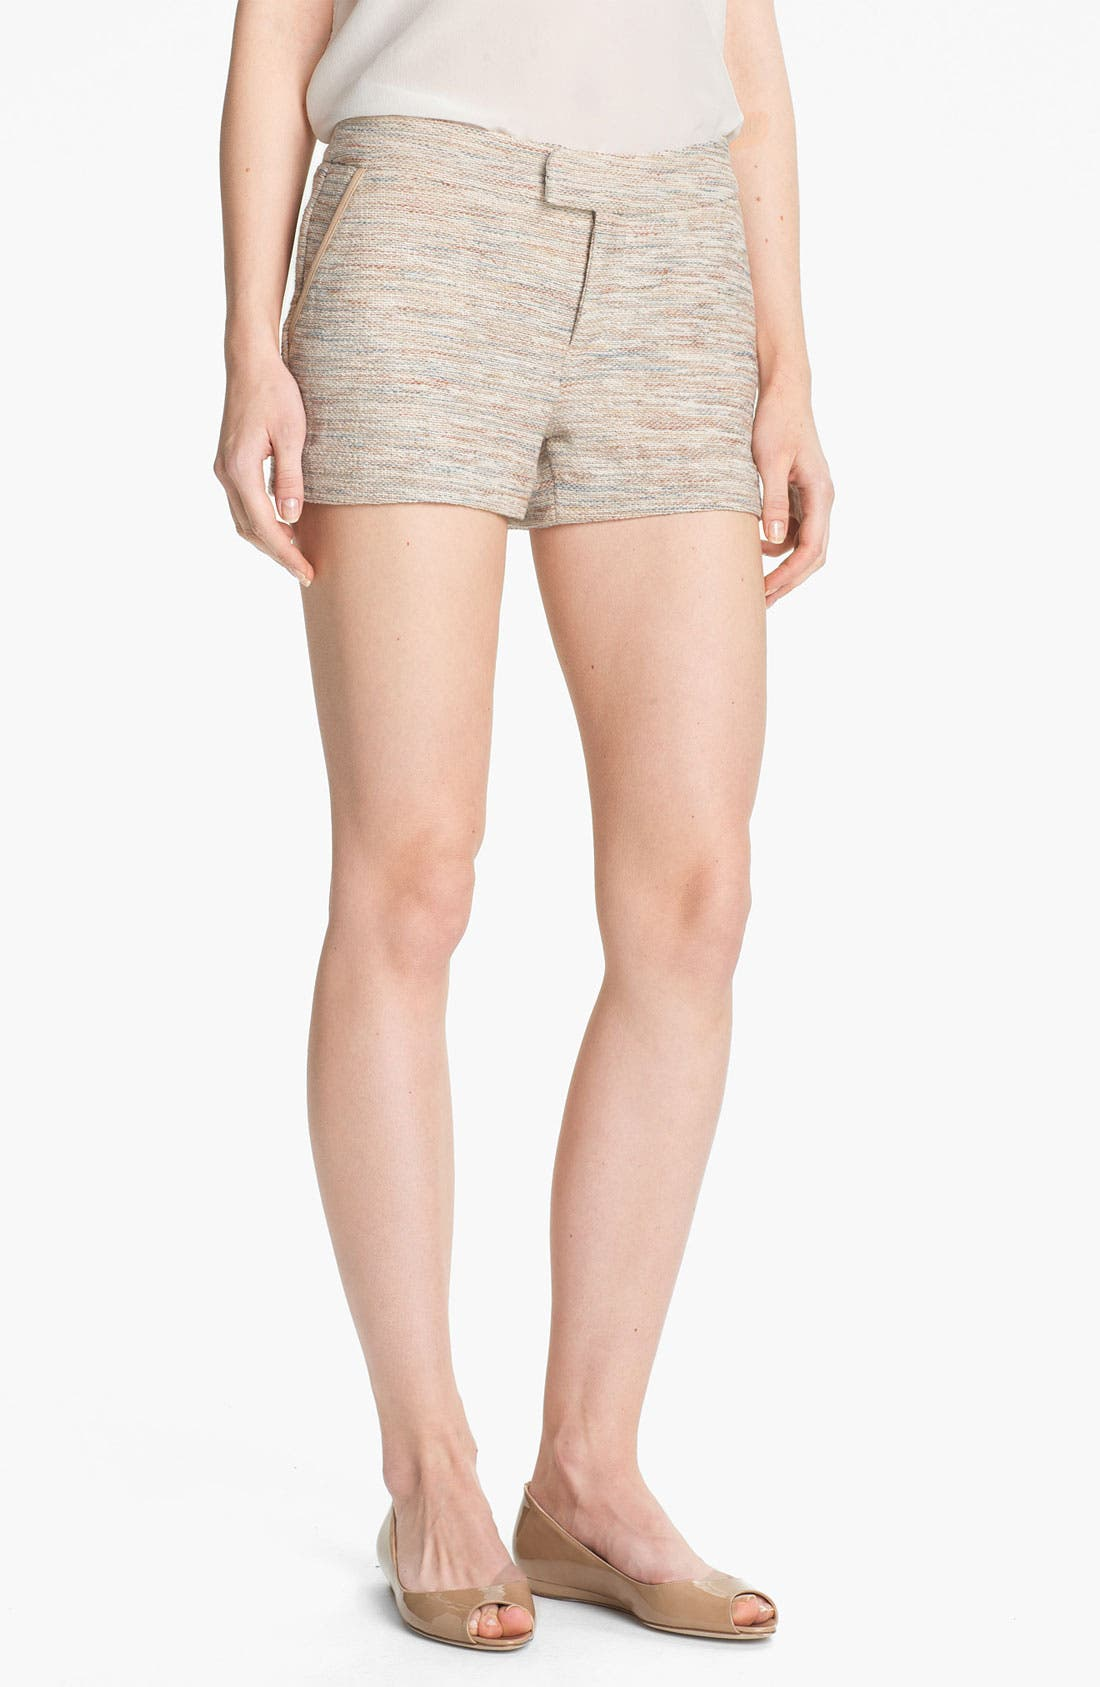 Alternate Image 1 Selected - Joie 'Arroyo' Shorts